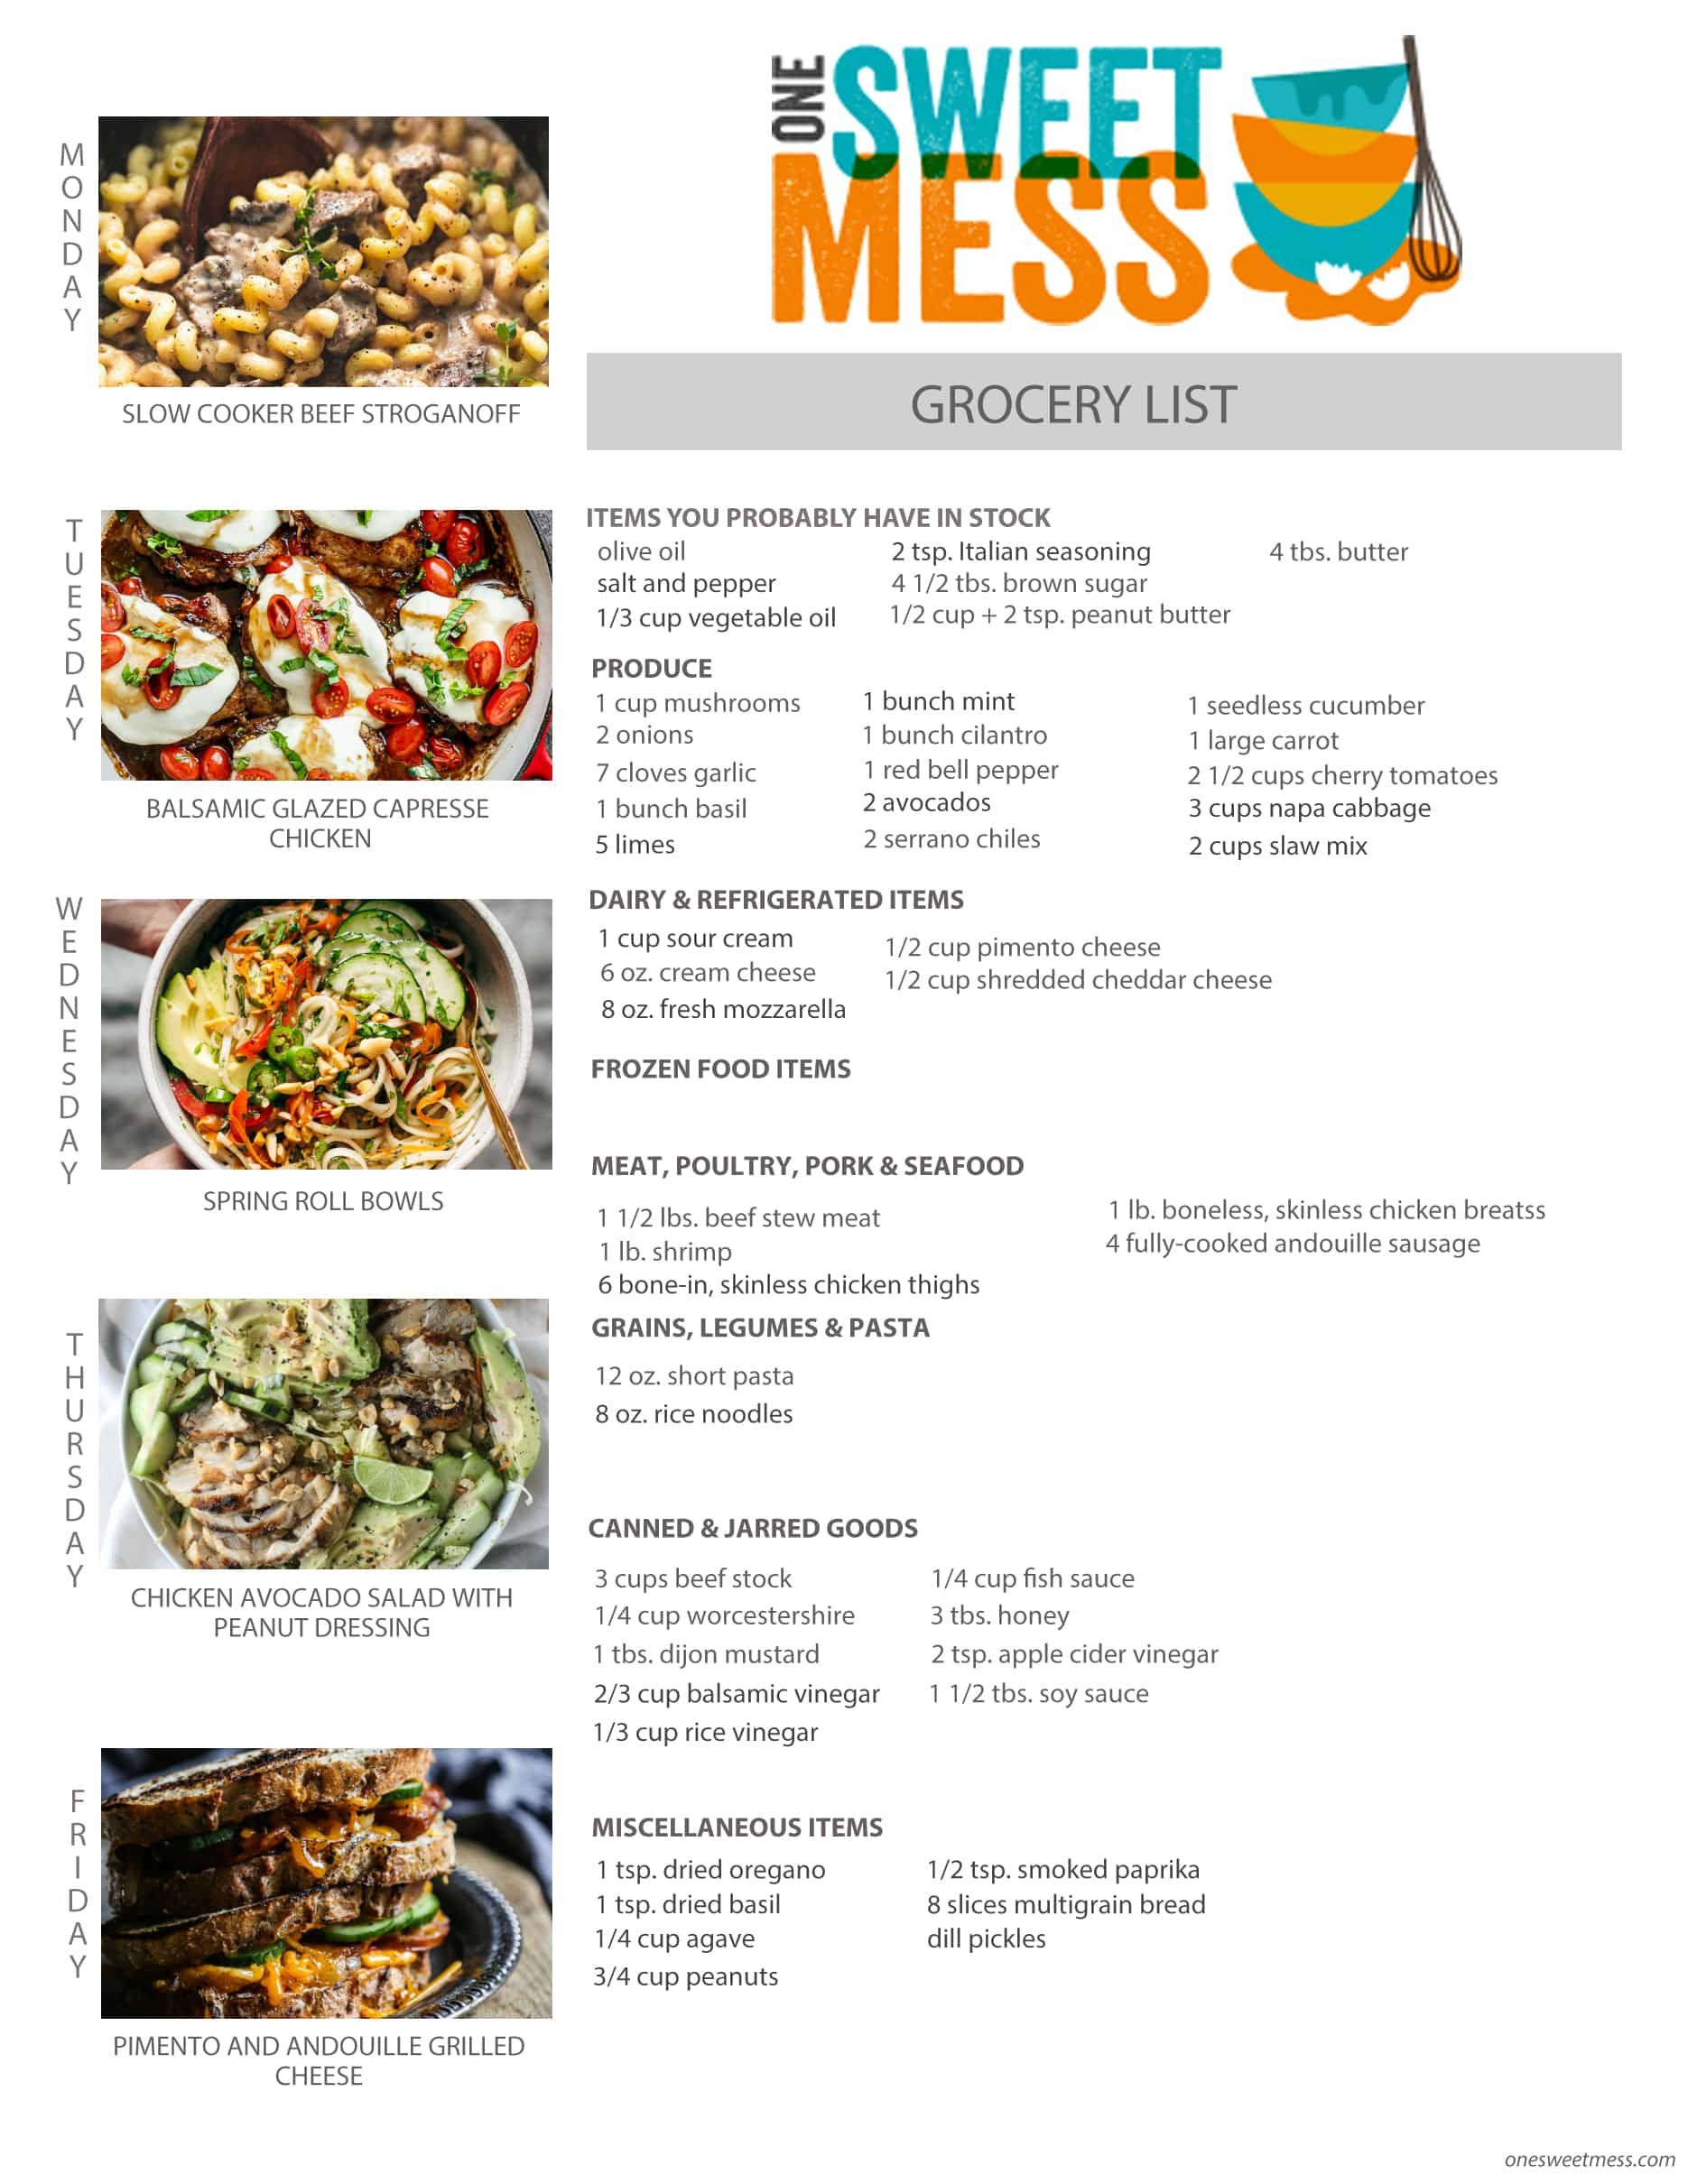 Week of April 10th, 2017 Weekly Meal Plan + Printable Grocery List